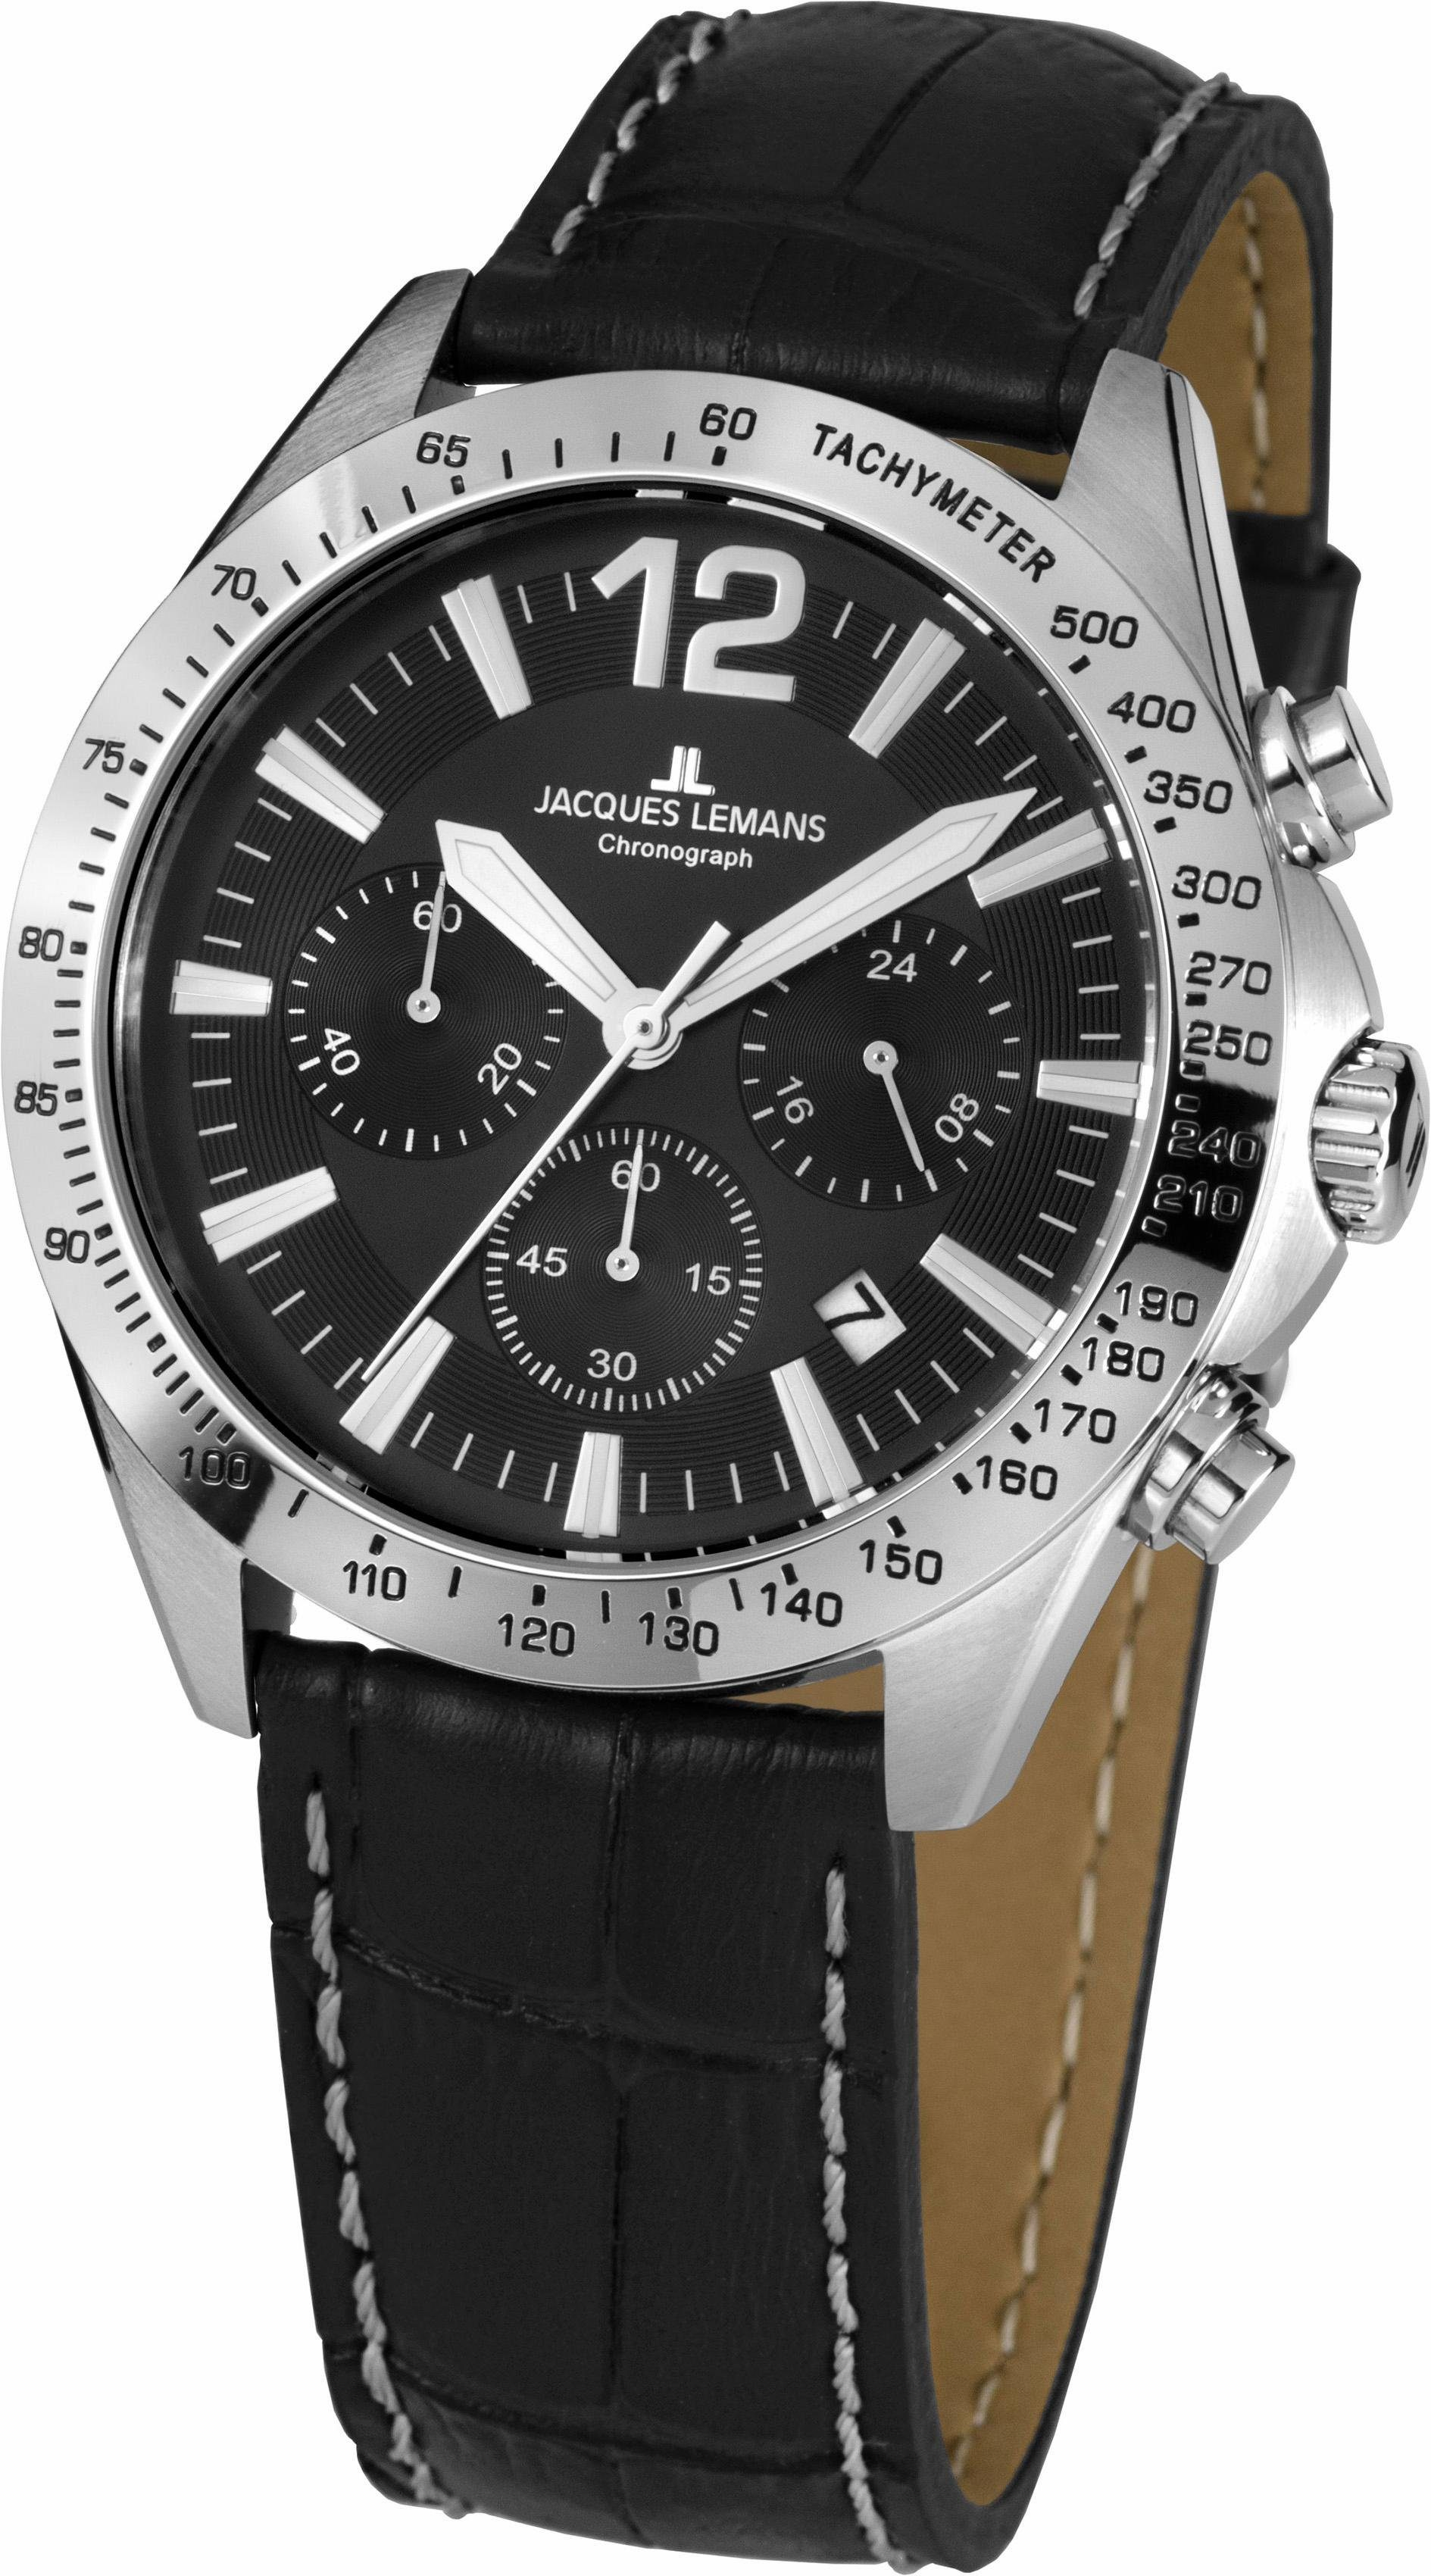 Jacques Lemans Sports Chronograph »Aktionsuhr, 42-5A«